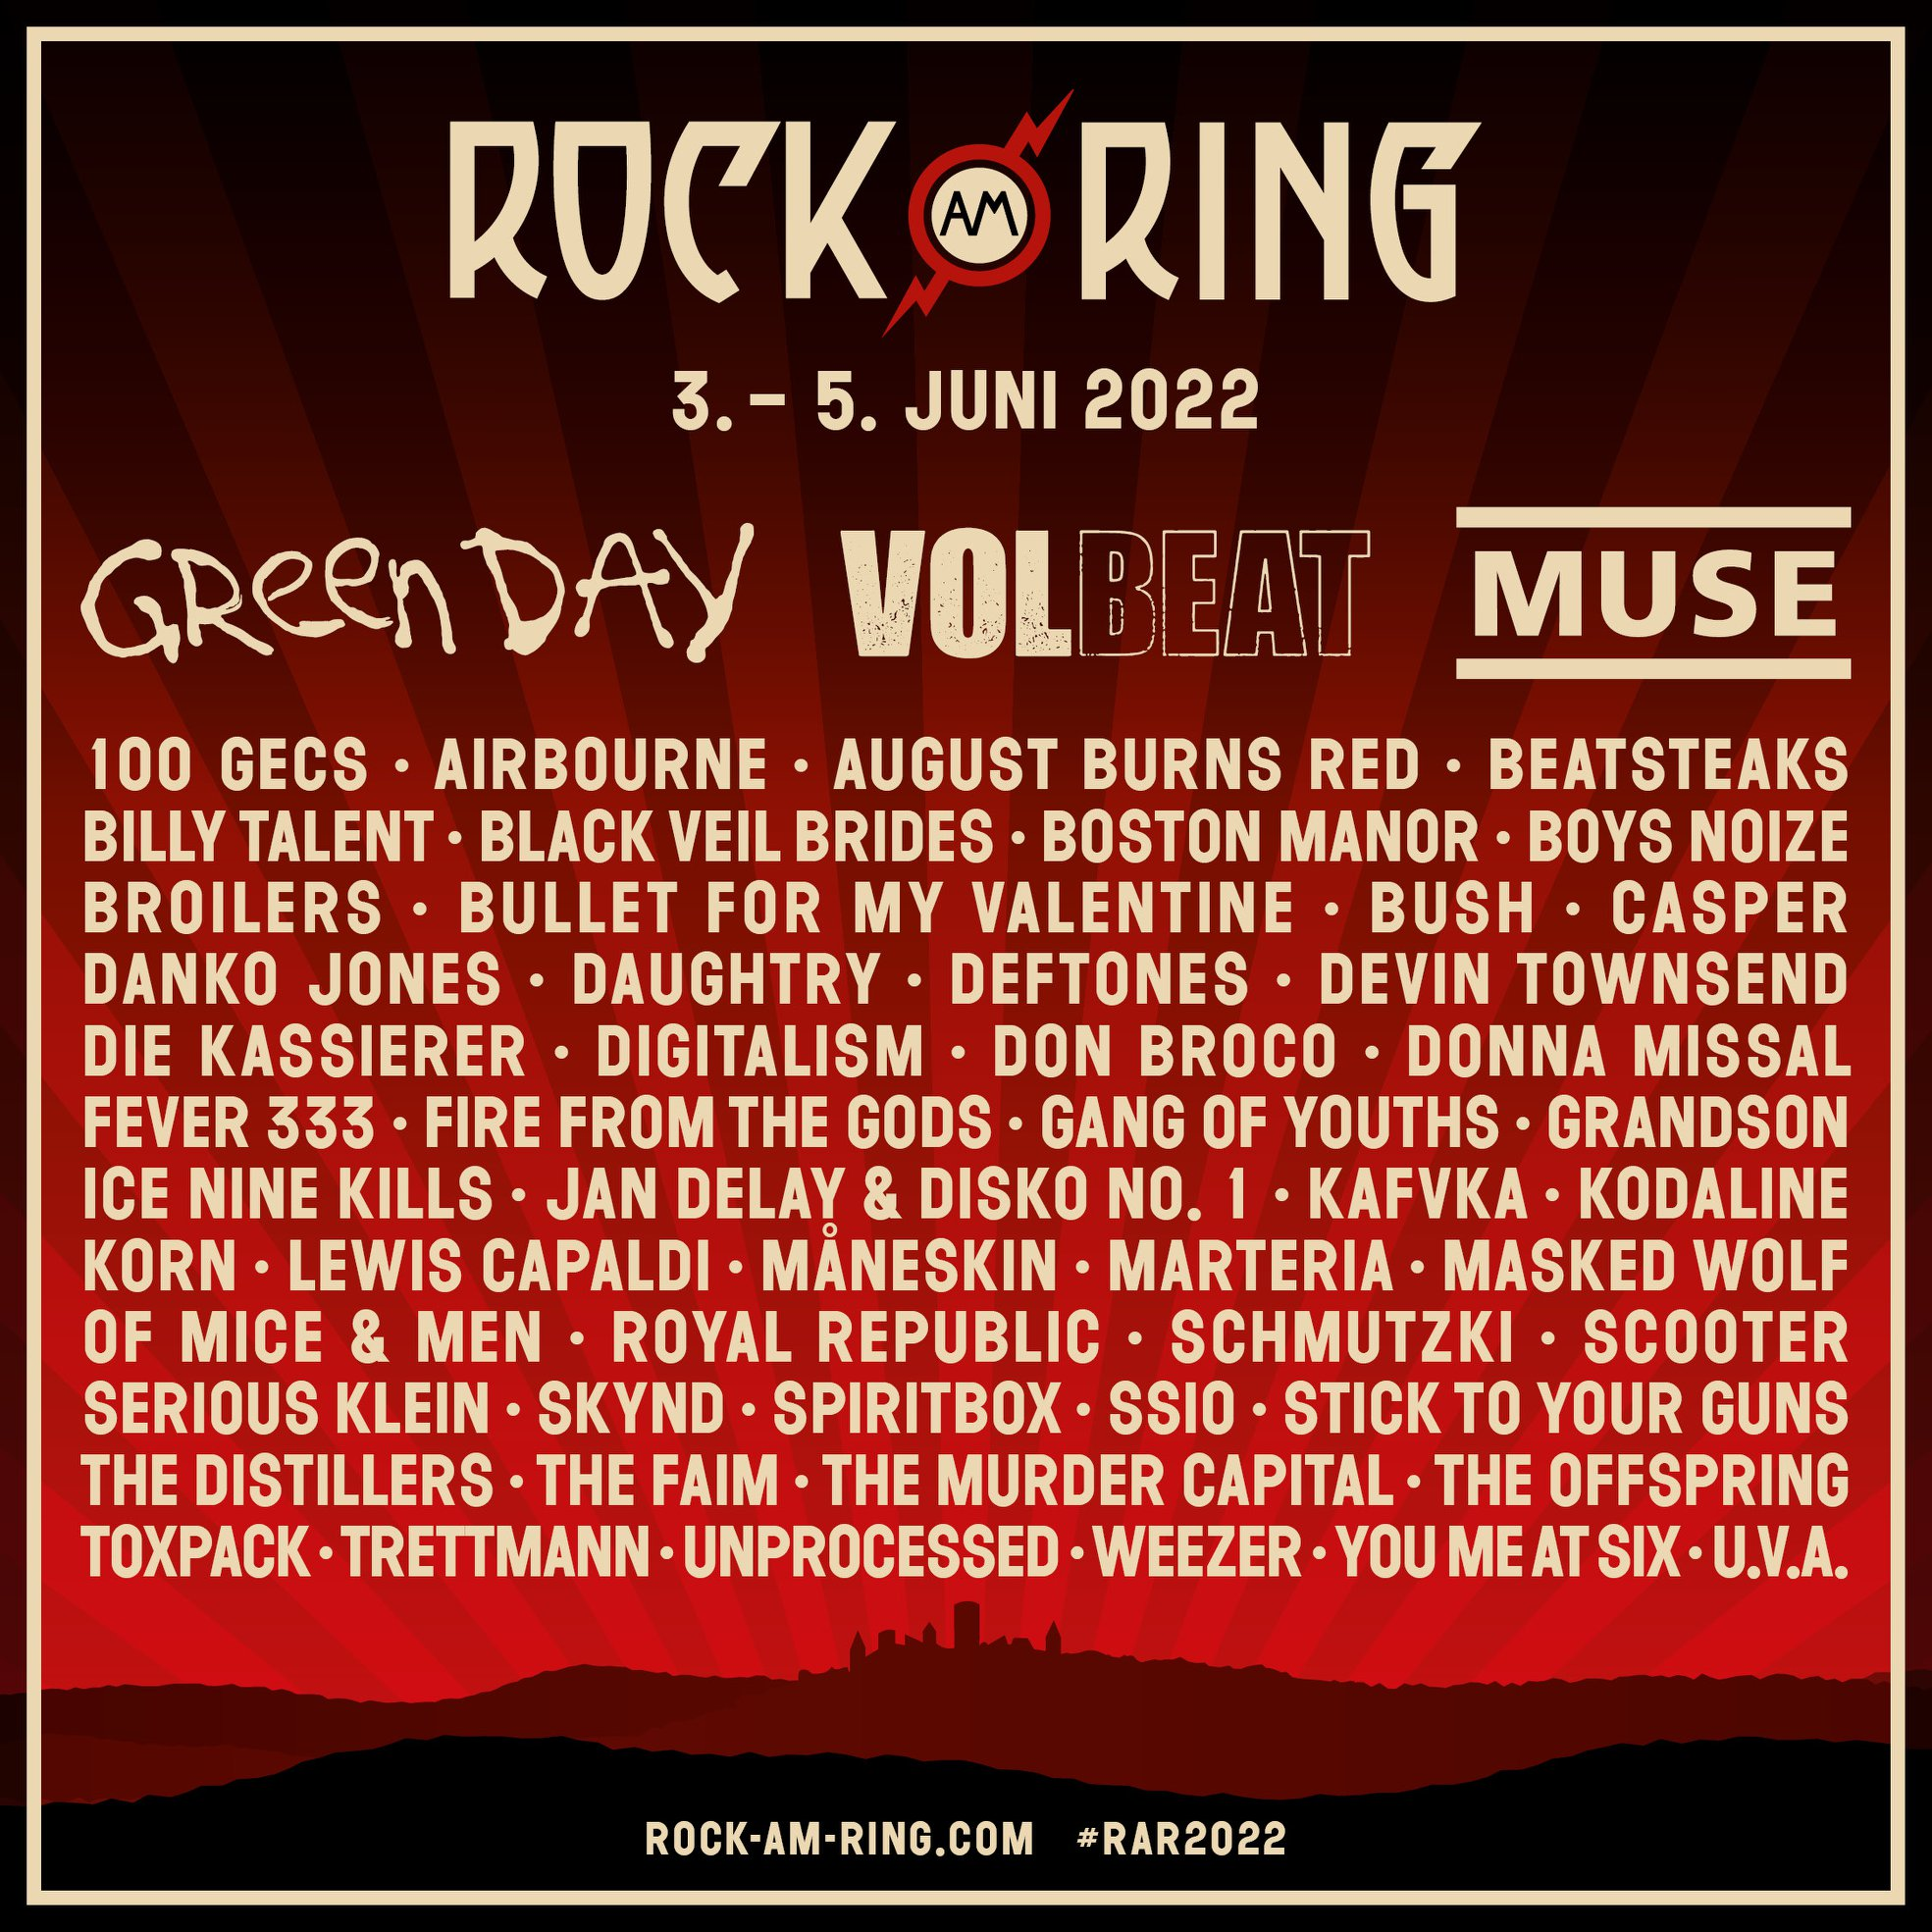 Rock Am Ring Adds Muse, Måneskin & More   All Things Loud